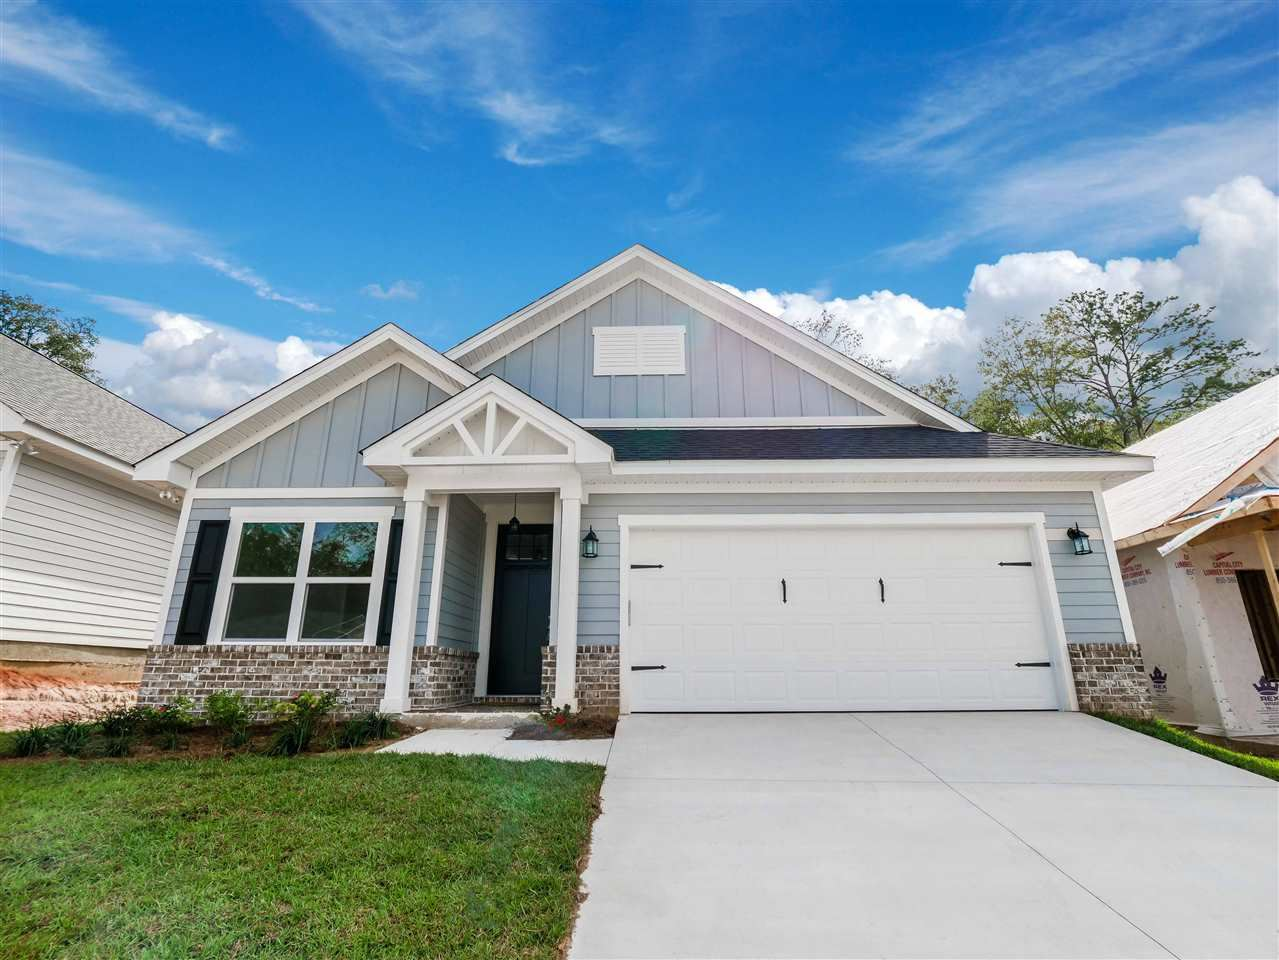 B5 River Breeze Lane, Tallahassee, FL 32303 - MLS#: 330156